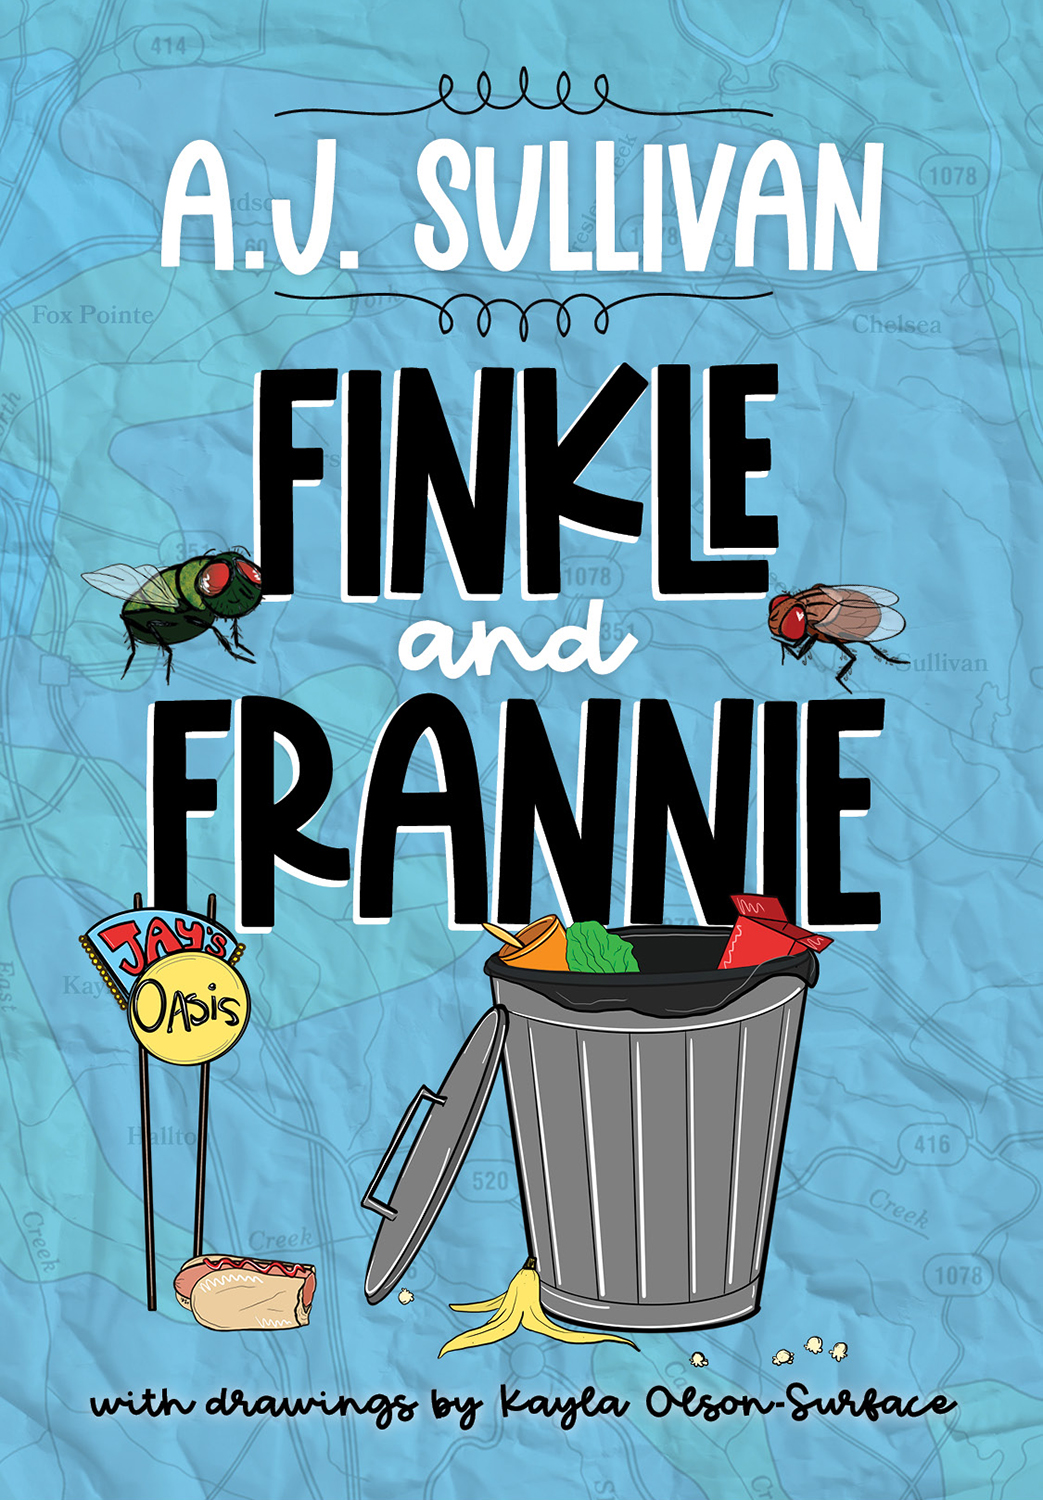 Finkle & Frannie